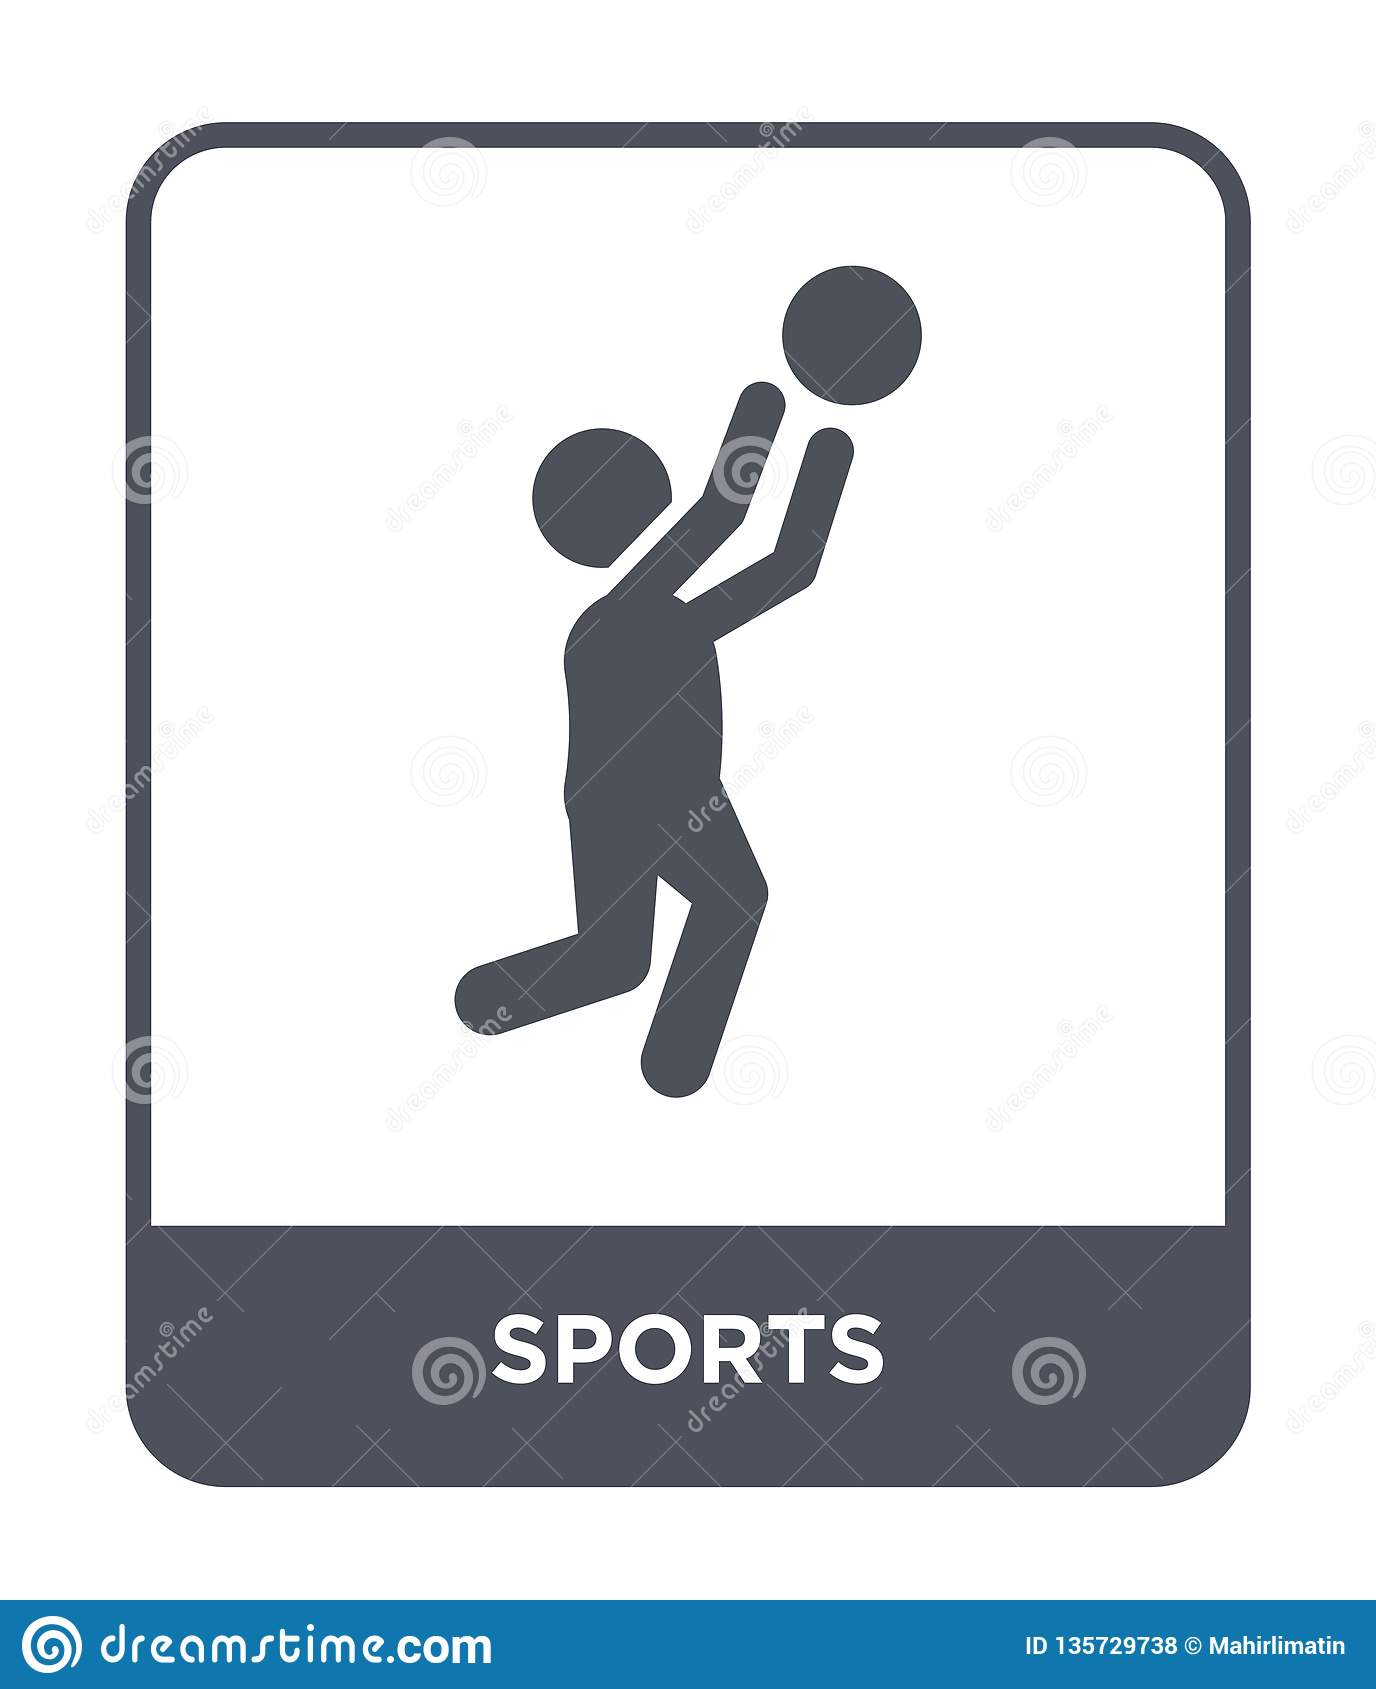 sports icon in trendy design style. sports icon isolated on white background. sports vector icon simple and modern flat symbol for